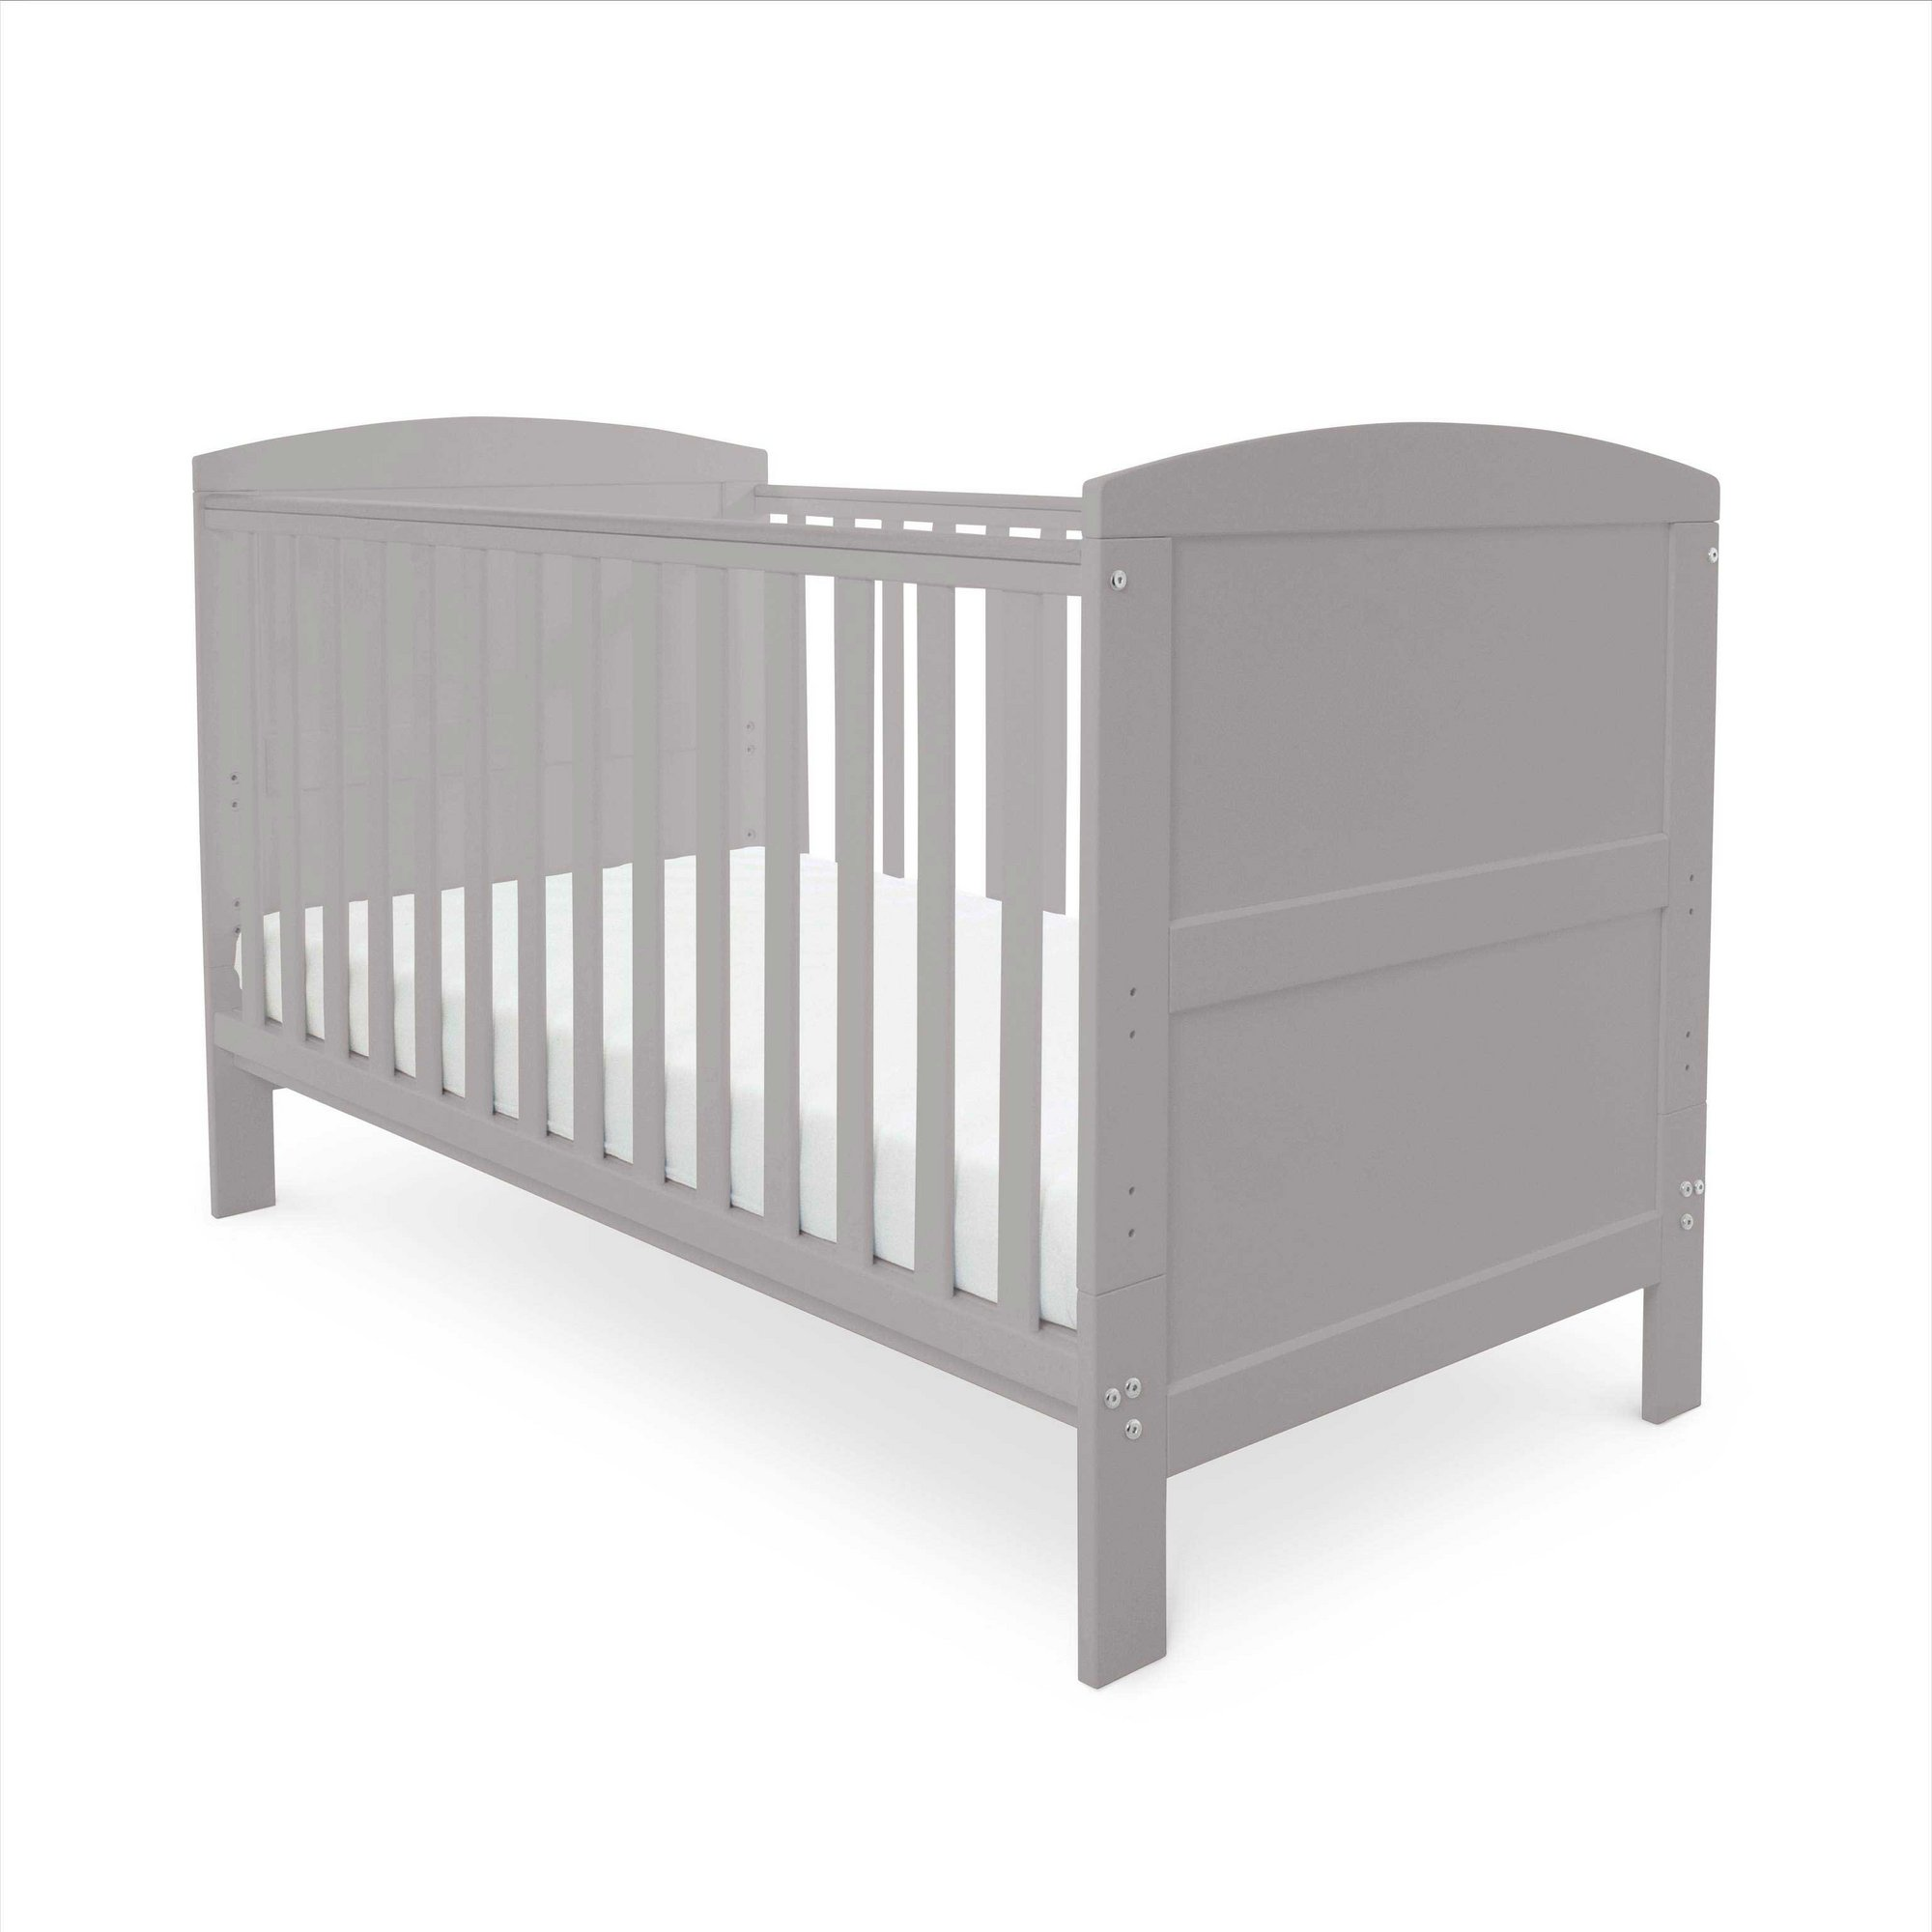 Image of Coleby Cot Bed Inc. Pocket Sprung Mattress - Grey